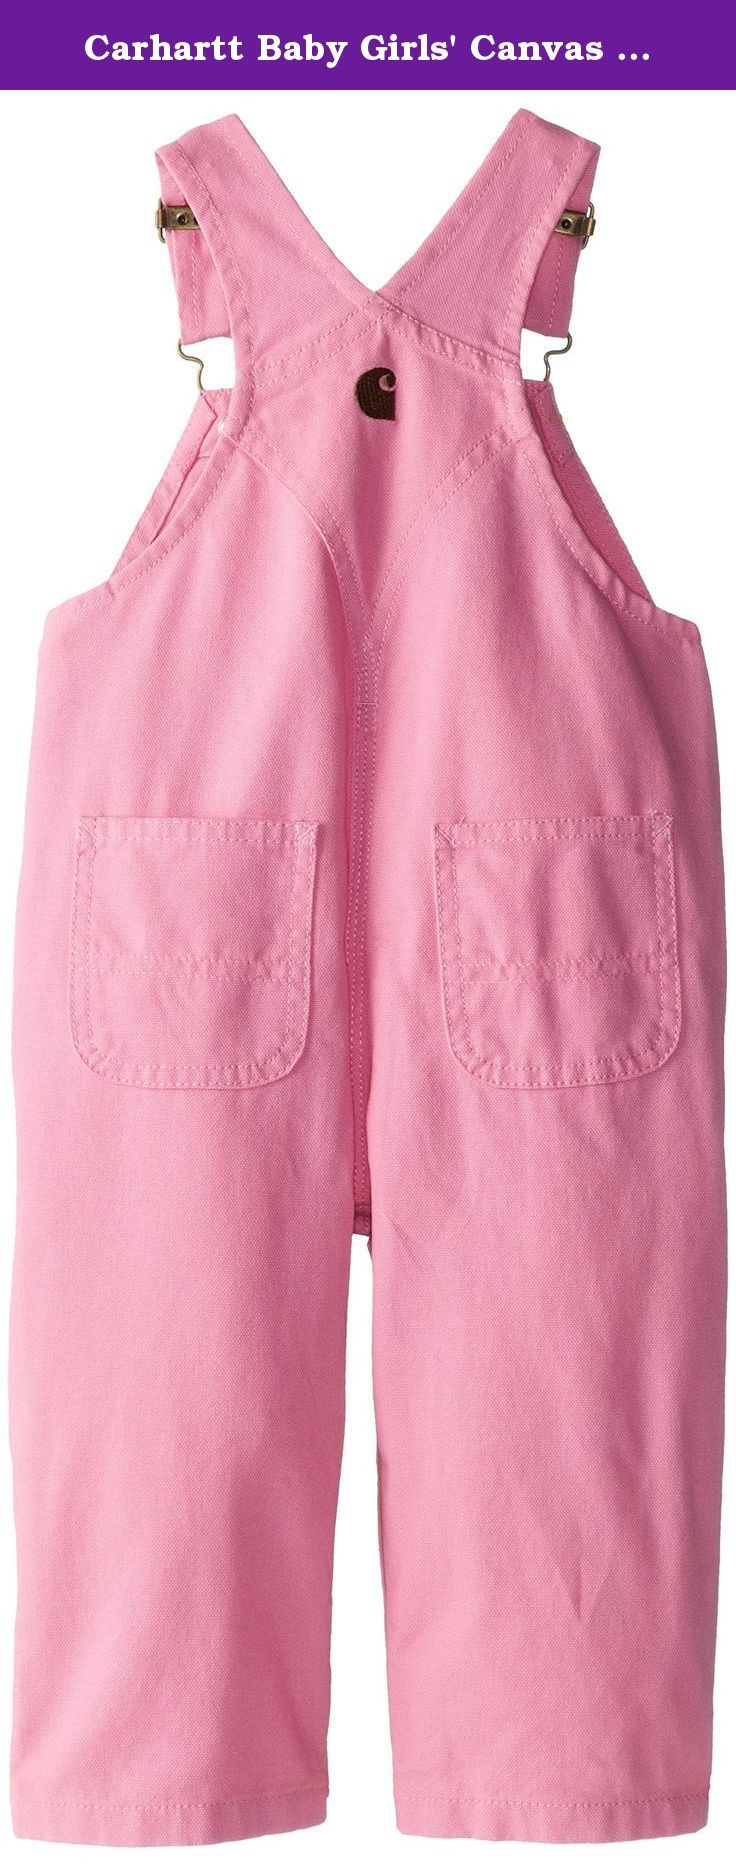 Carhartt Baby Girls' Canvas Bib Overall Inf Tod, Pink, 18 Months. Triple-stitched main seams for added durability. Diagonal full zip and quilted taffeta lining permit easy entry/exit. Gusseted crotch diminishes ride-up, and provides extra room and mobility. Split-leg construction works well with backpack, car or bike seat. Back dungaree pockets and side utility pocket for an authentic Carhartt look. Hidden rib cuffs at sleeves and legs for extra warmth. Carhartt woven brand mark label on...